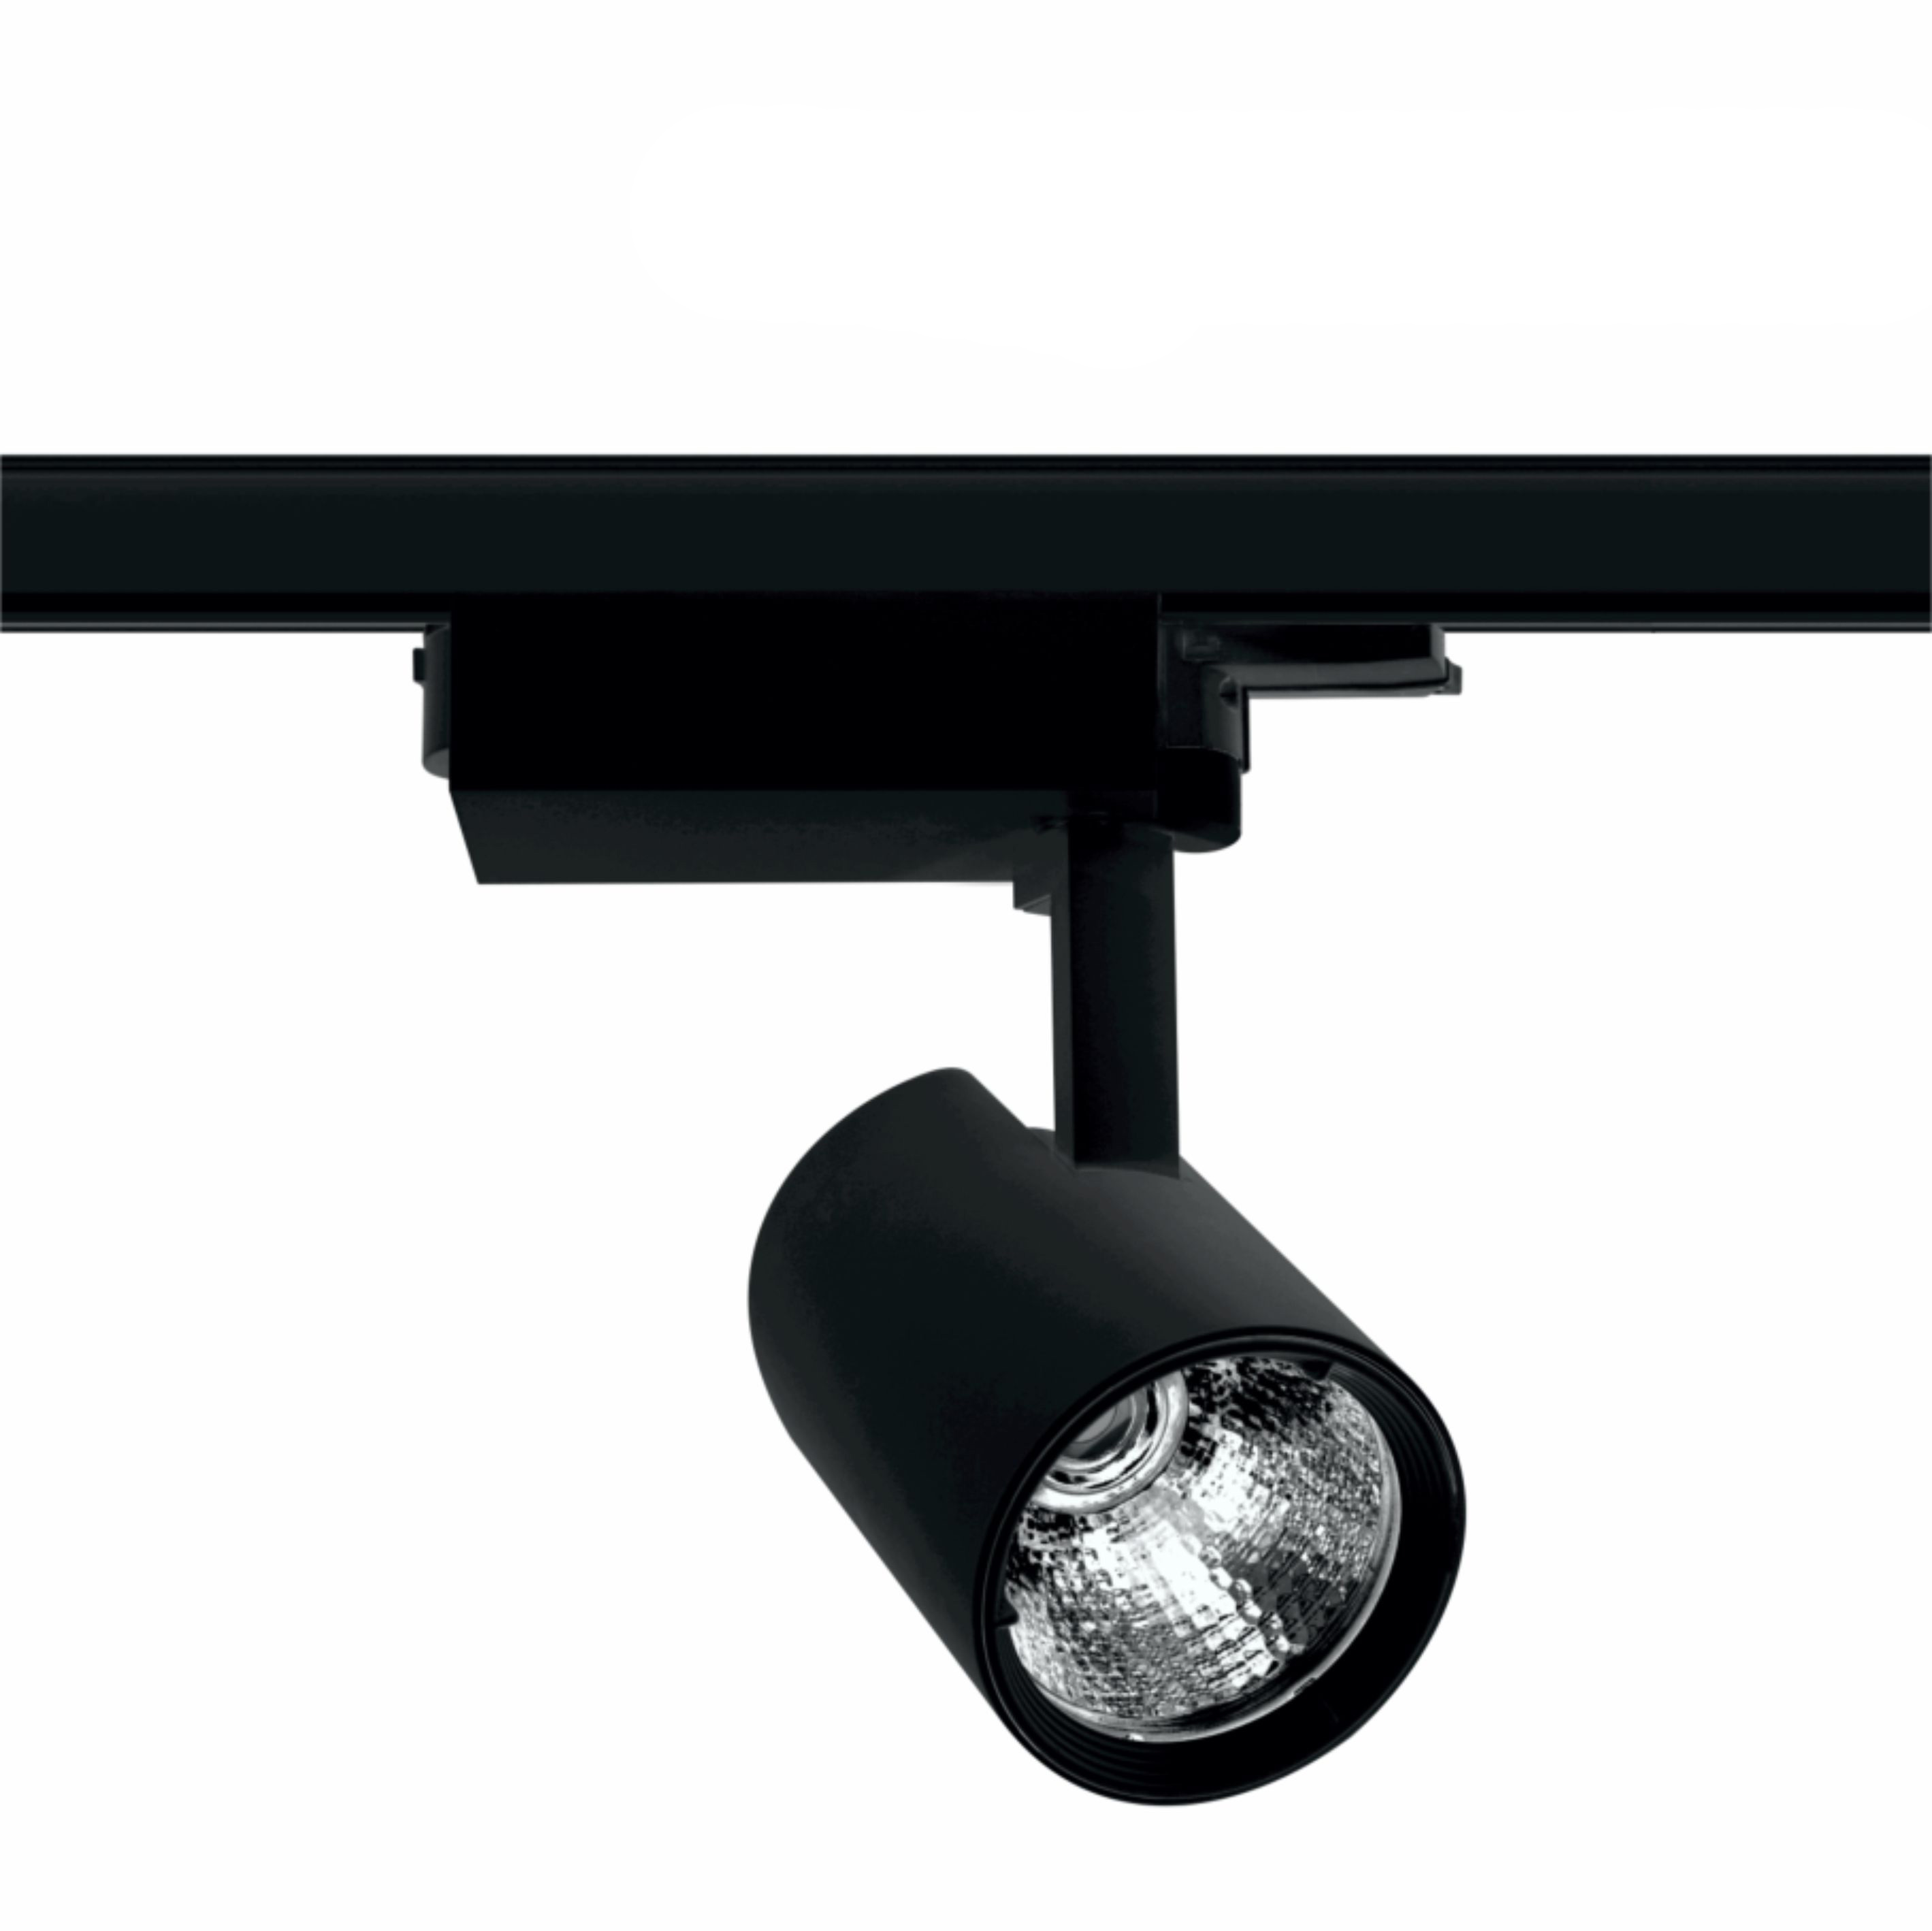 Tracklight POX 42 Watt Beneito Faure en vente chez CONNECTILED